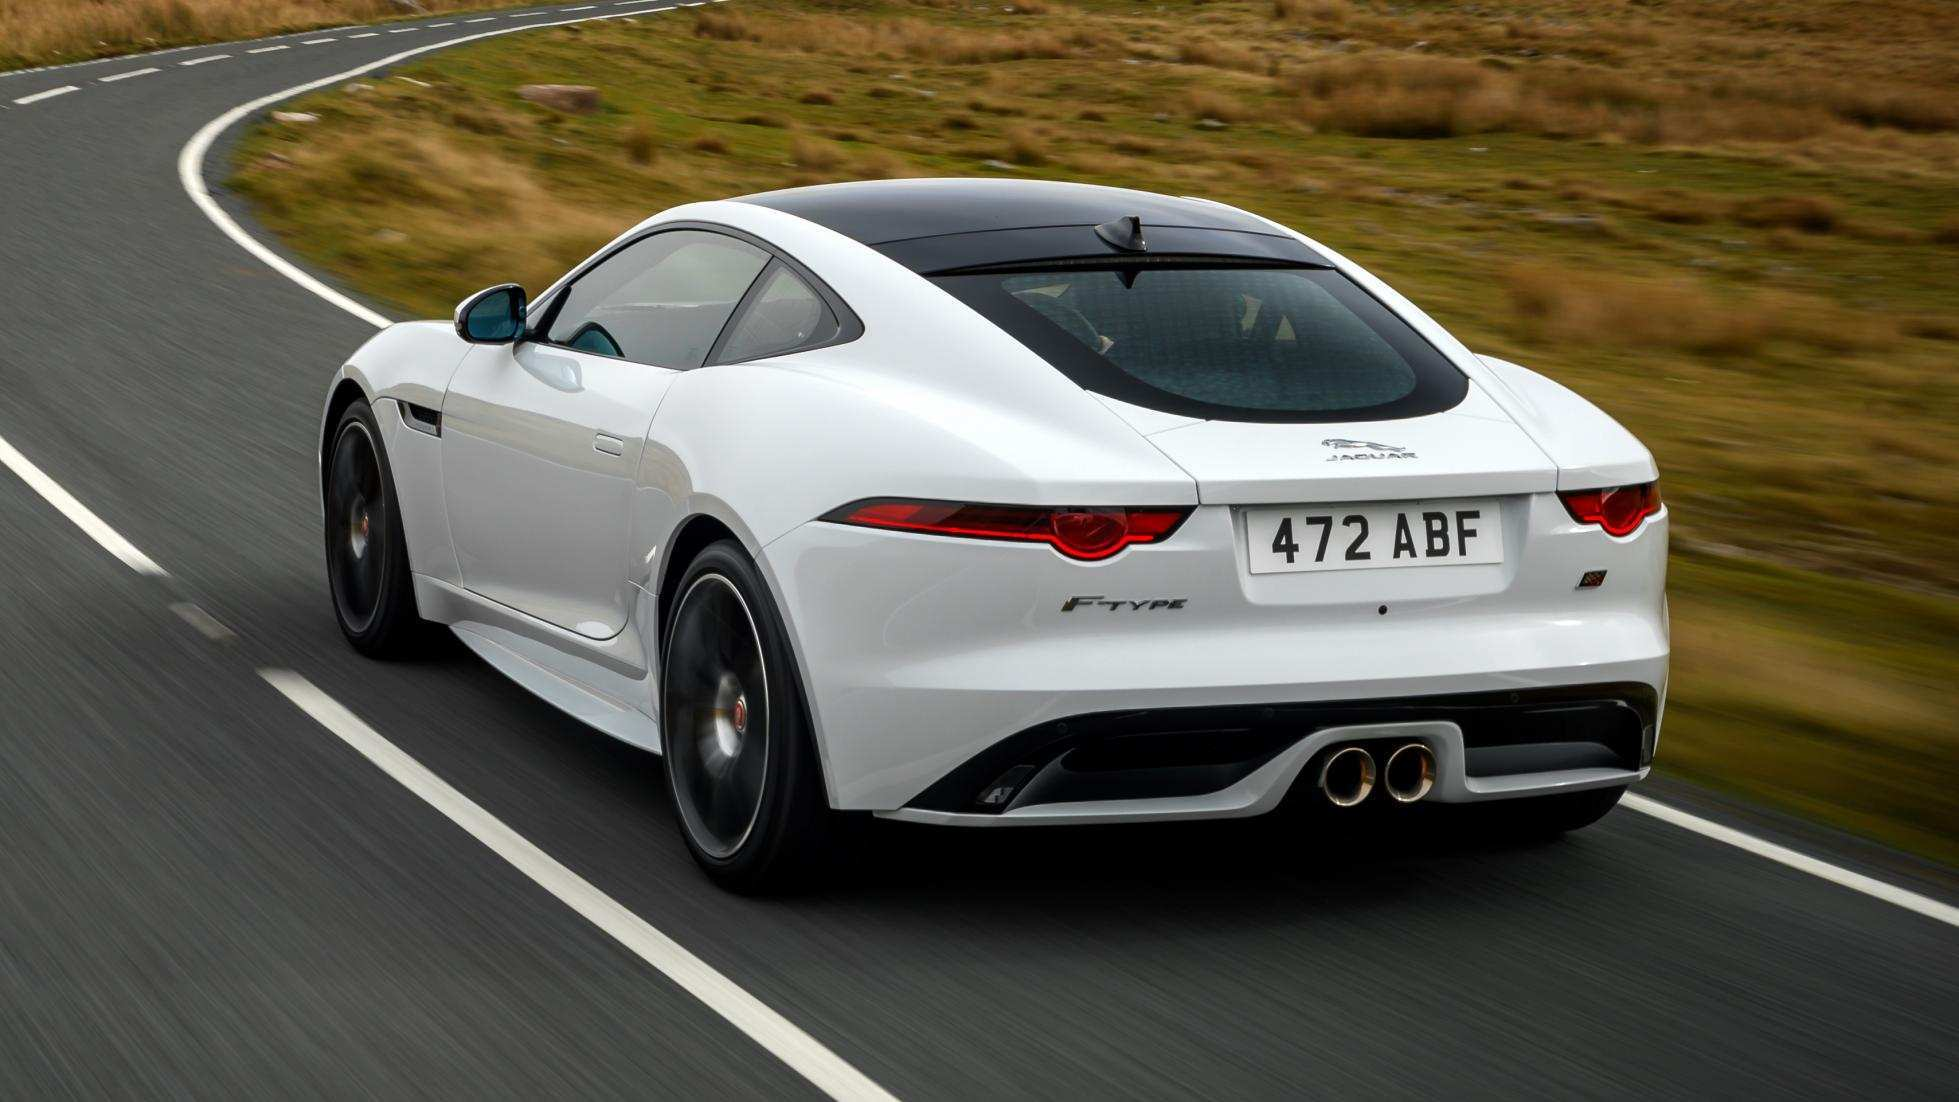 30 Best Review 2020 Jaguar F Type Coupe Ratings for 2020 Jaguar F Type Coupe